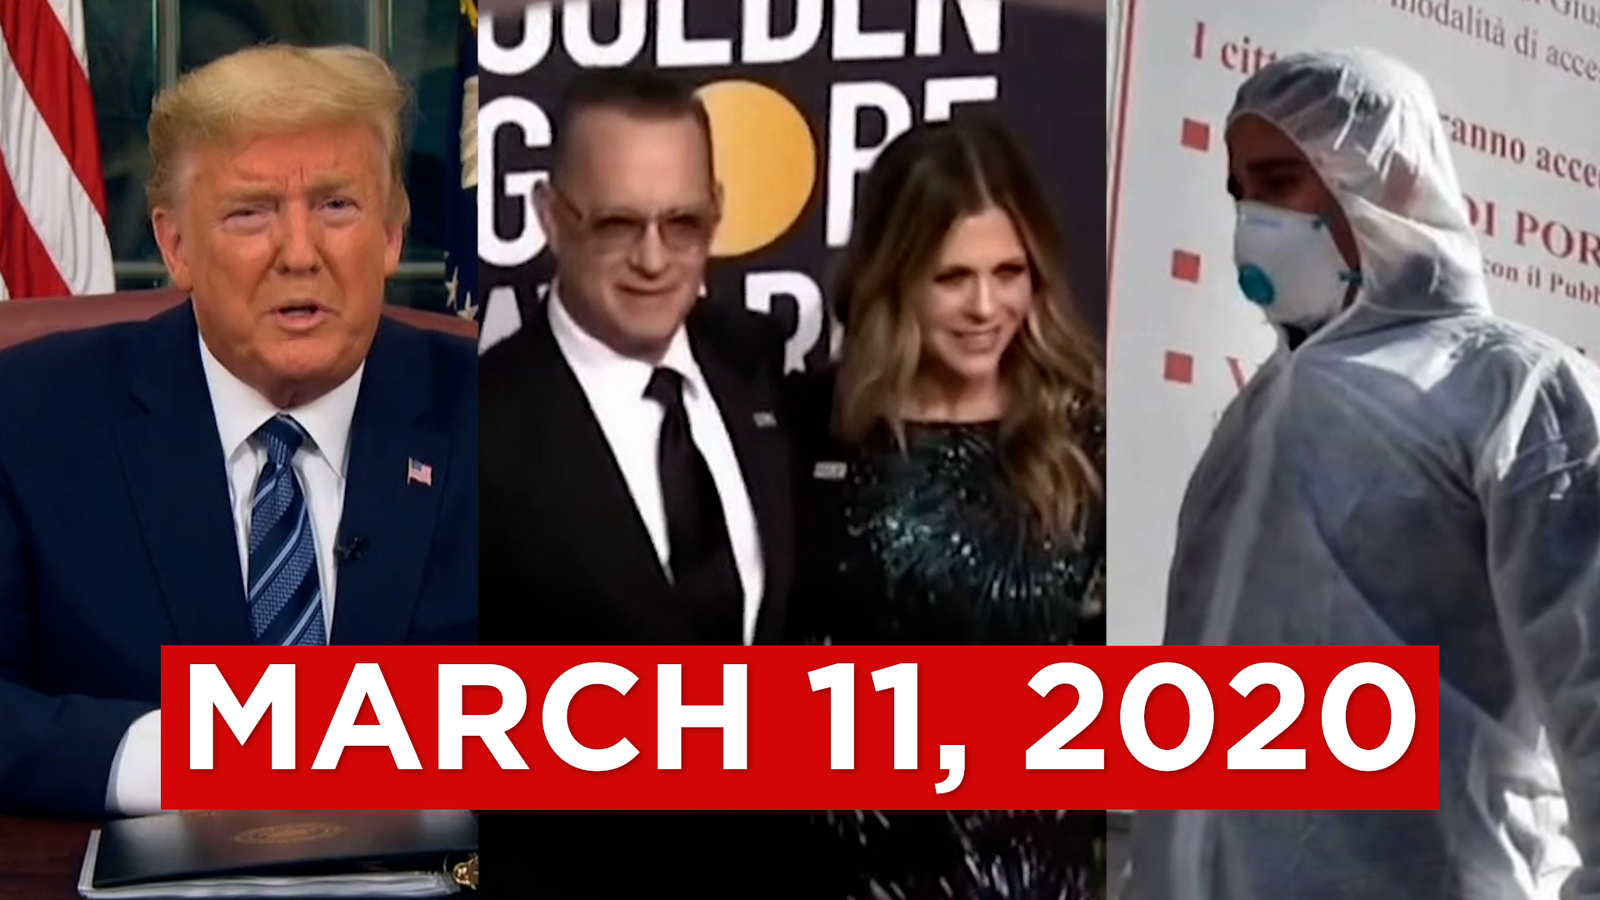 Watch the newscast from the night the world changed – March 11, 2020